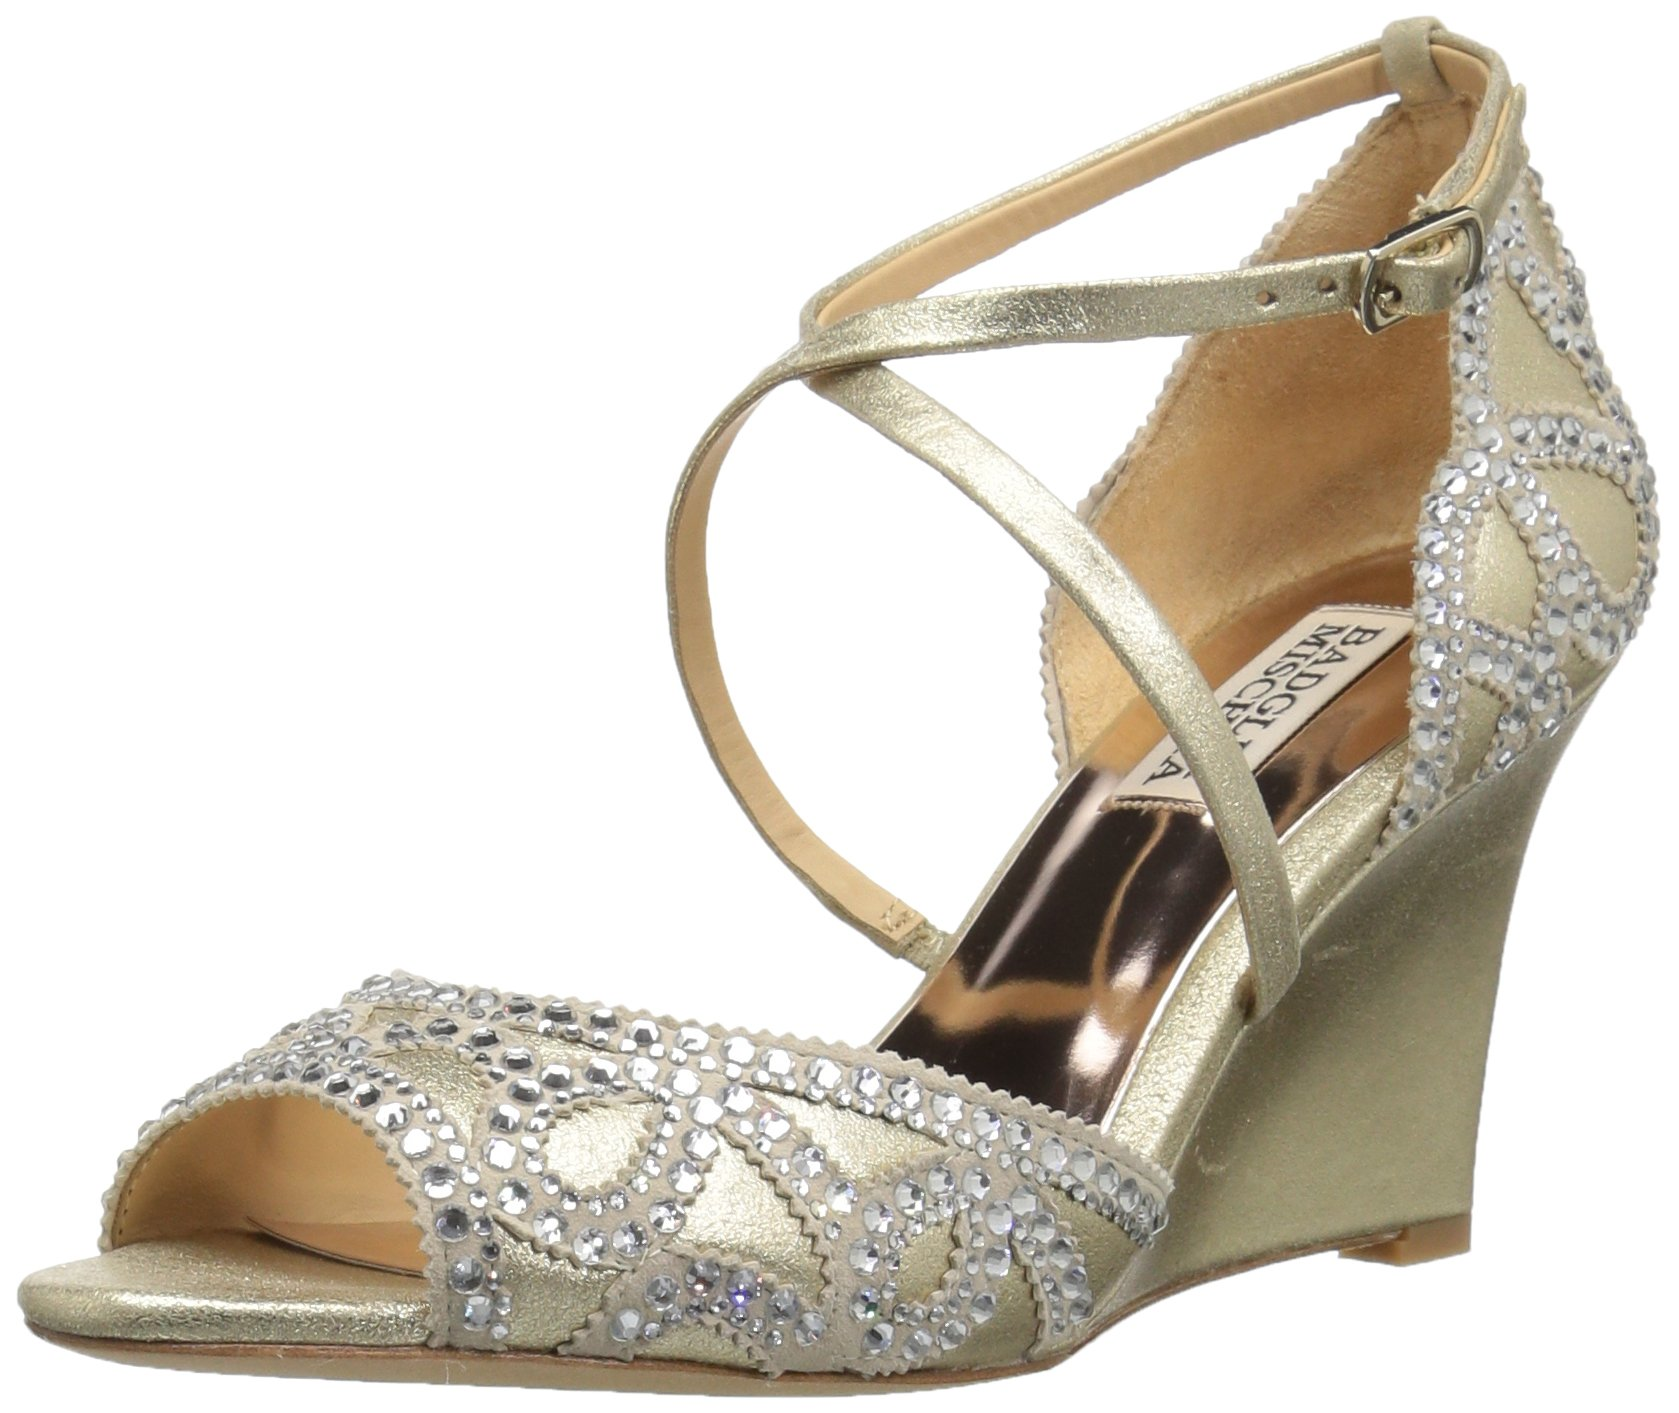 Badgley Mischka Women's Winter Wedge Sandal, Platino, 8 M US